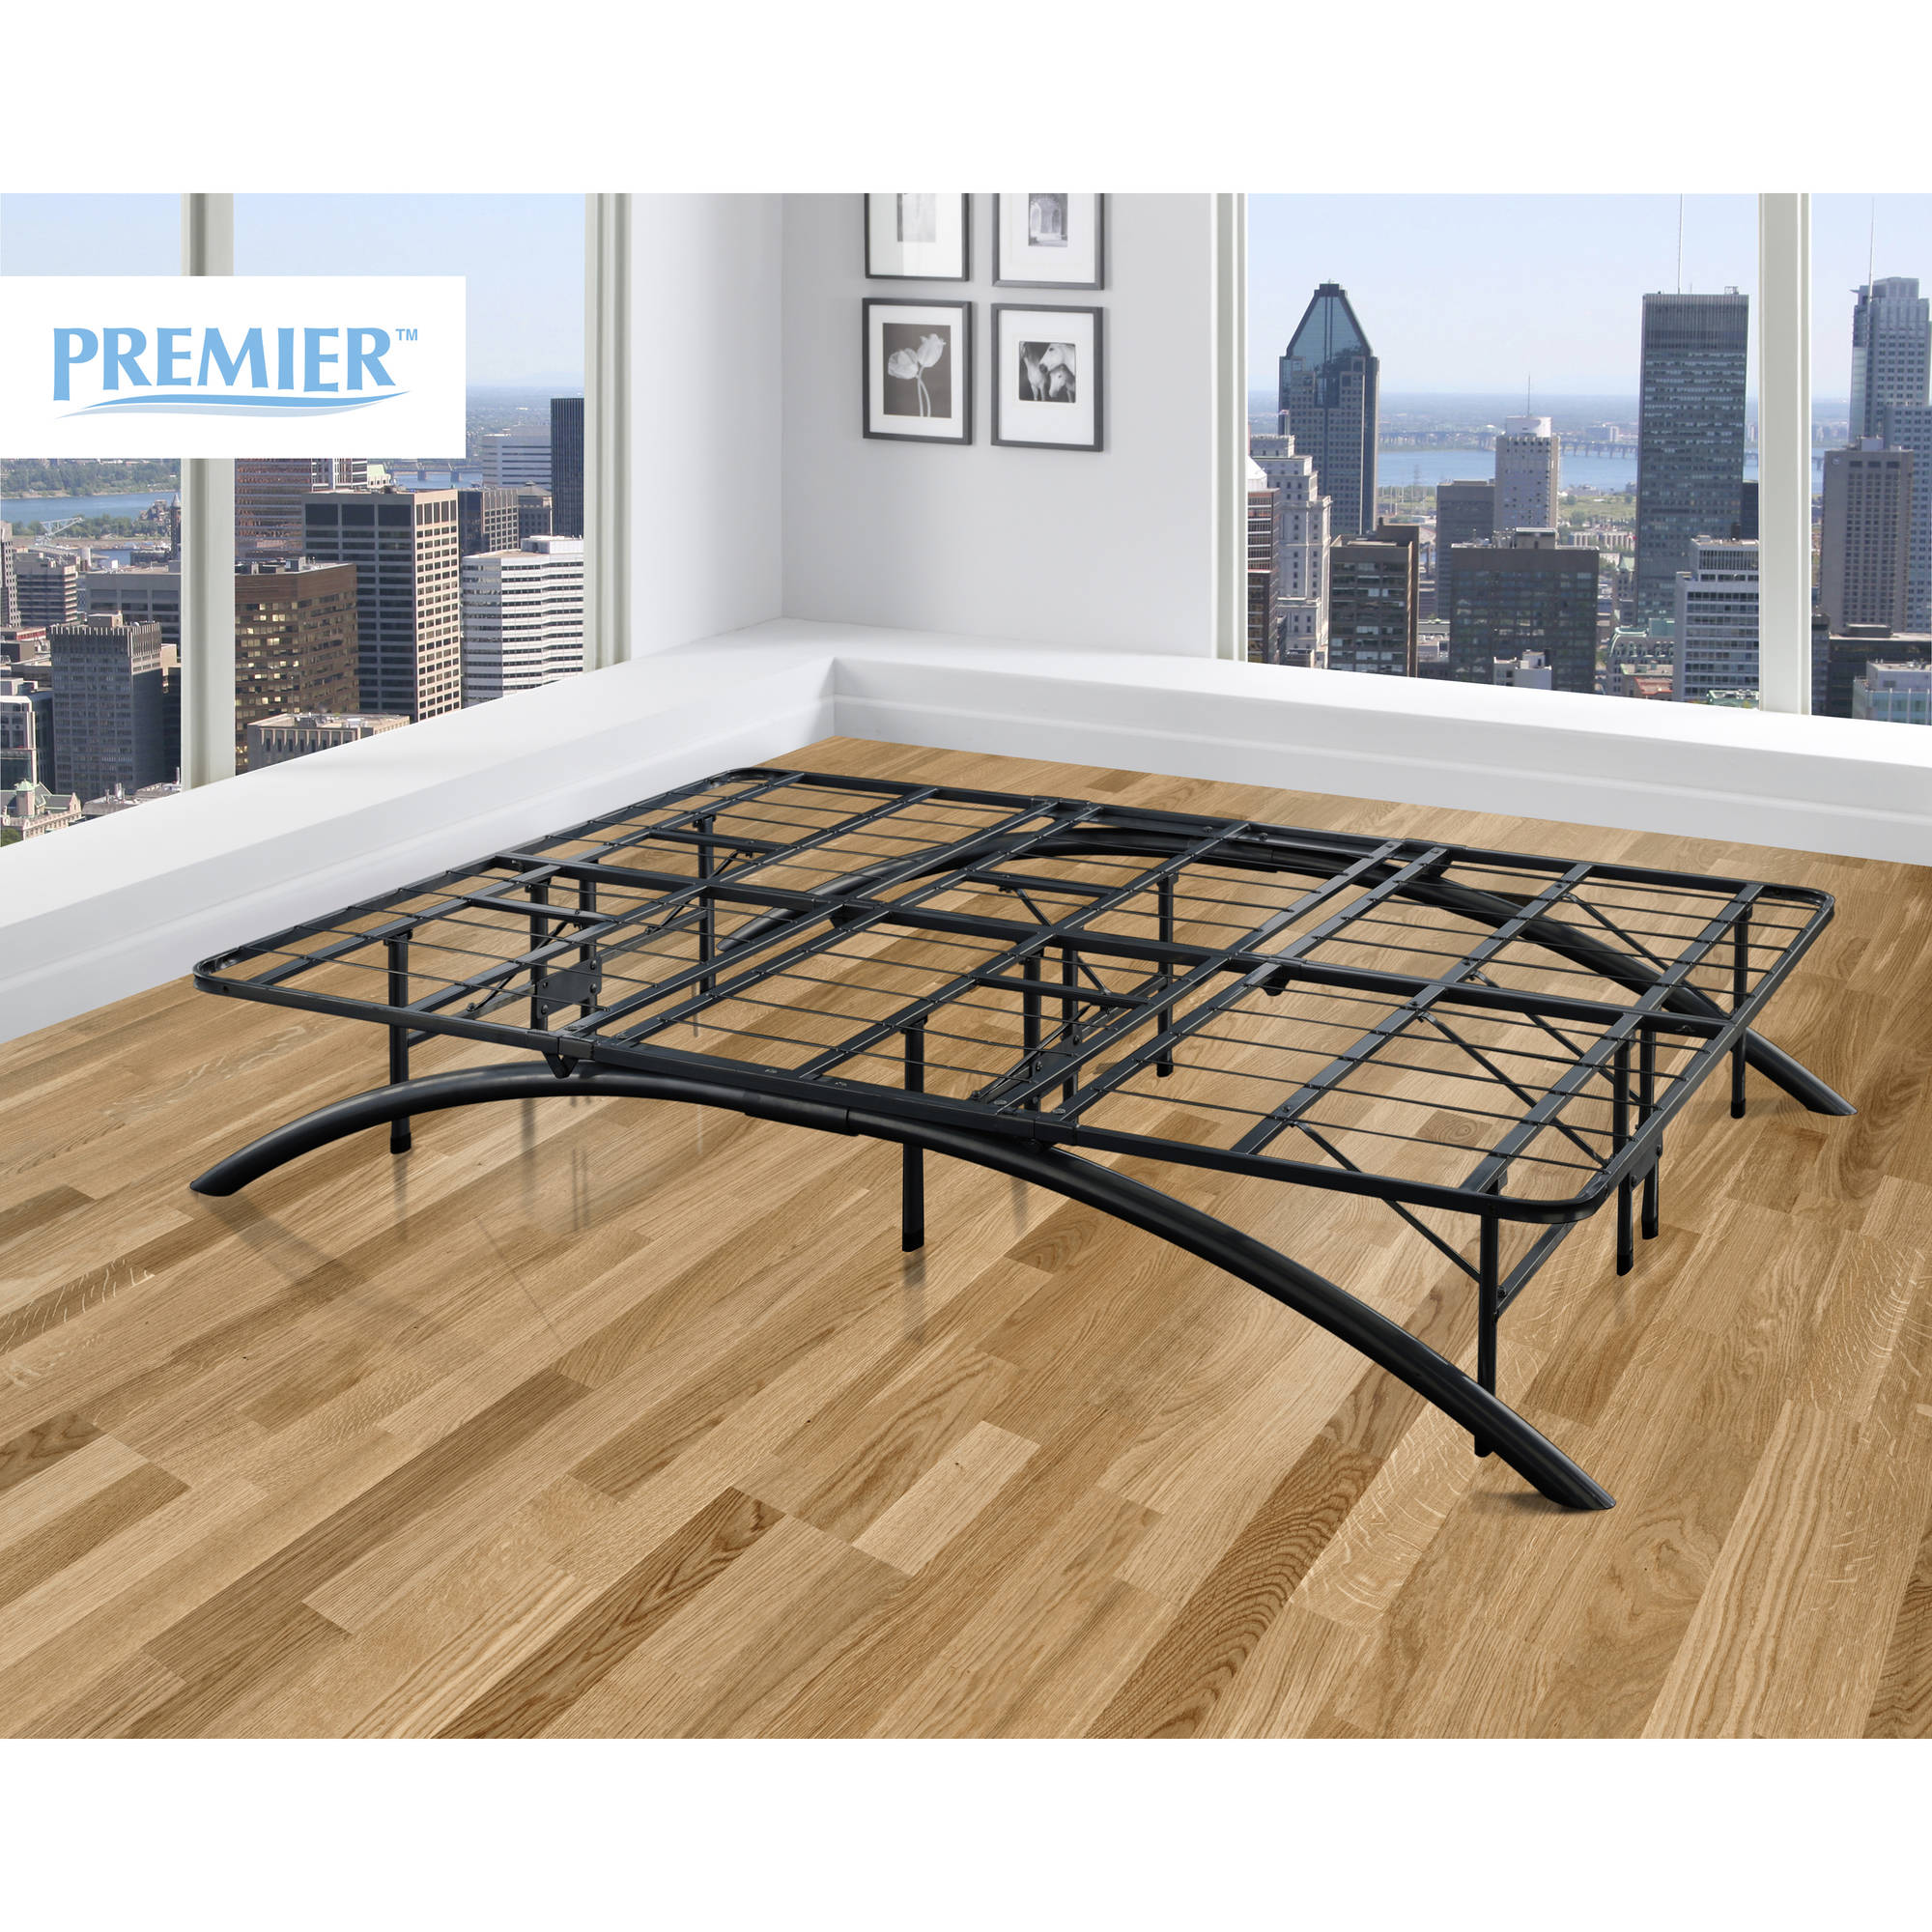 premier ellipse arch platform bed frame black multiple sizes walmartcom - Modern Metal Bed Frame